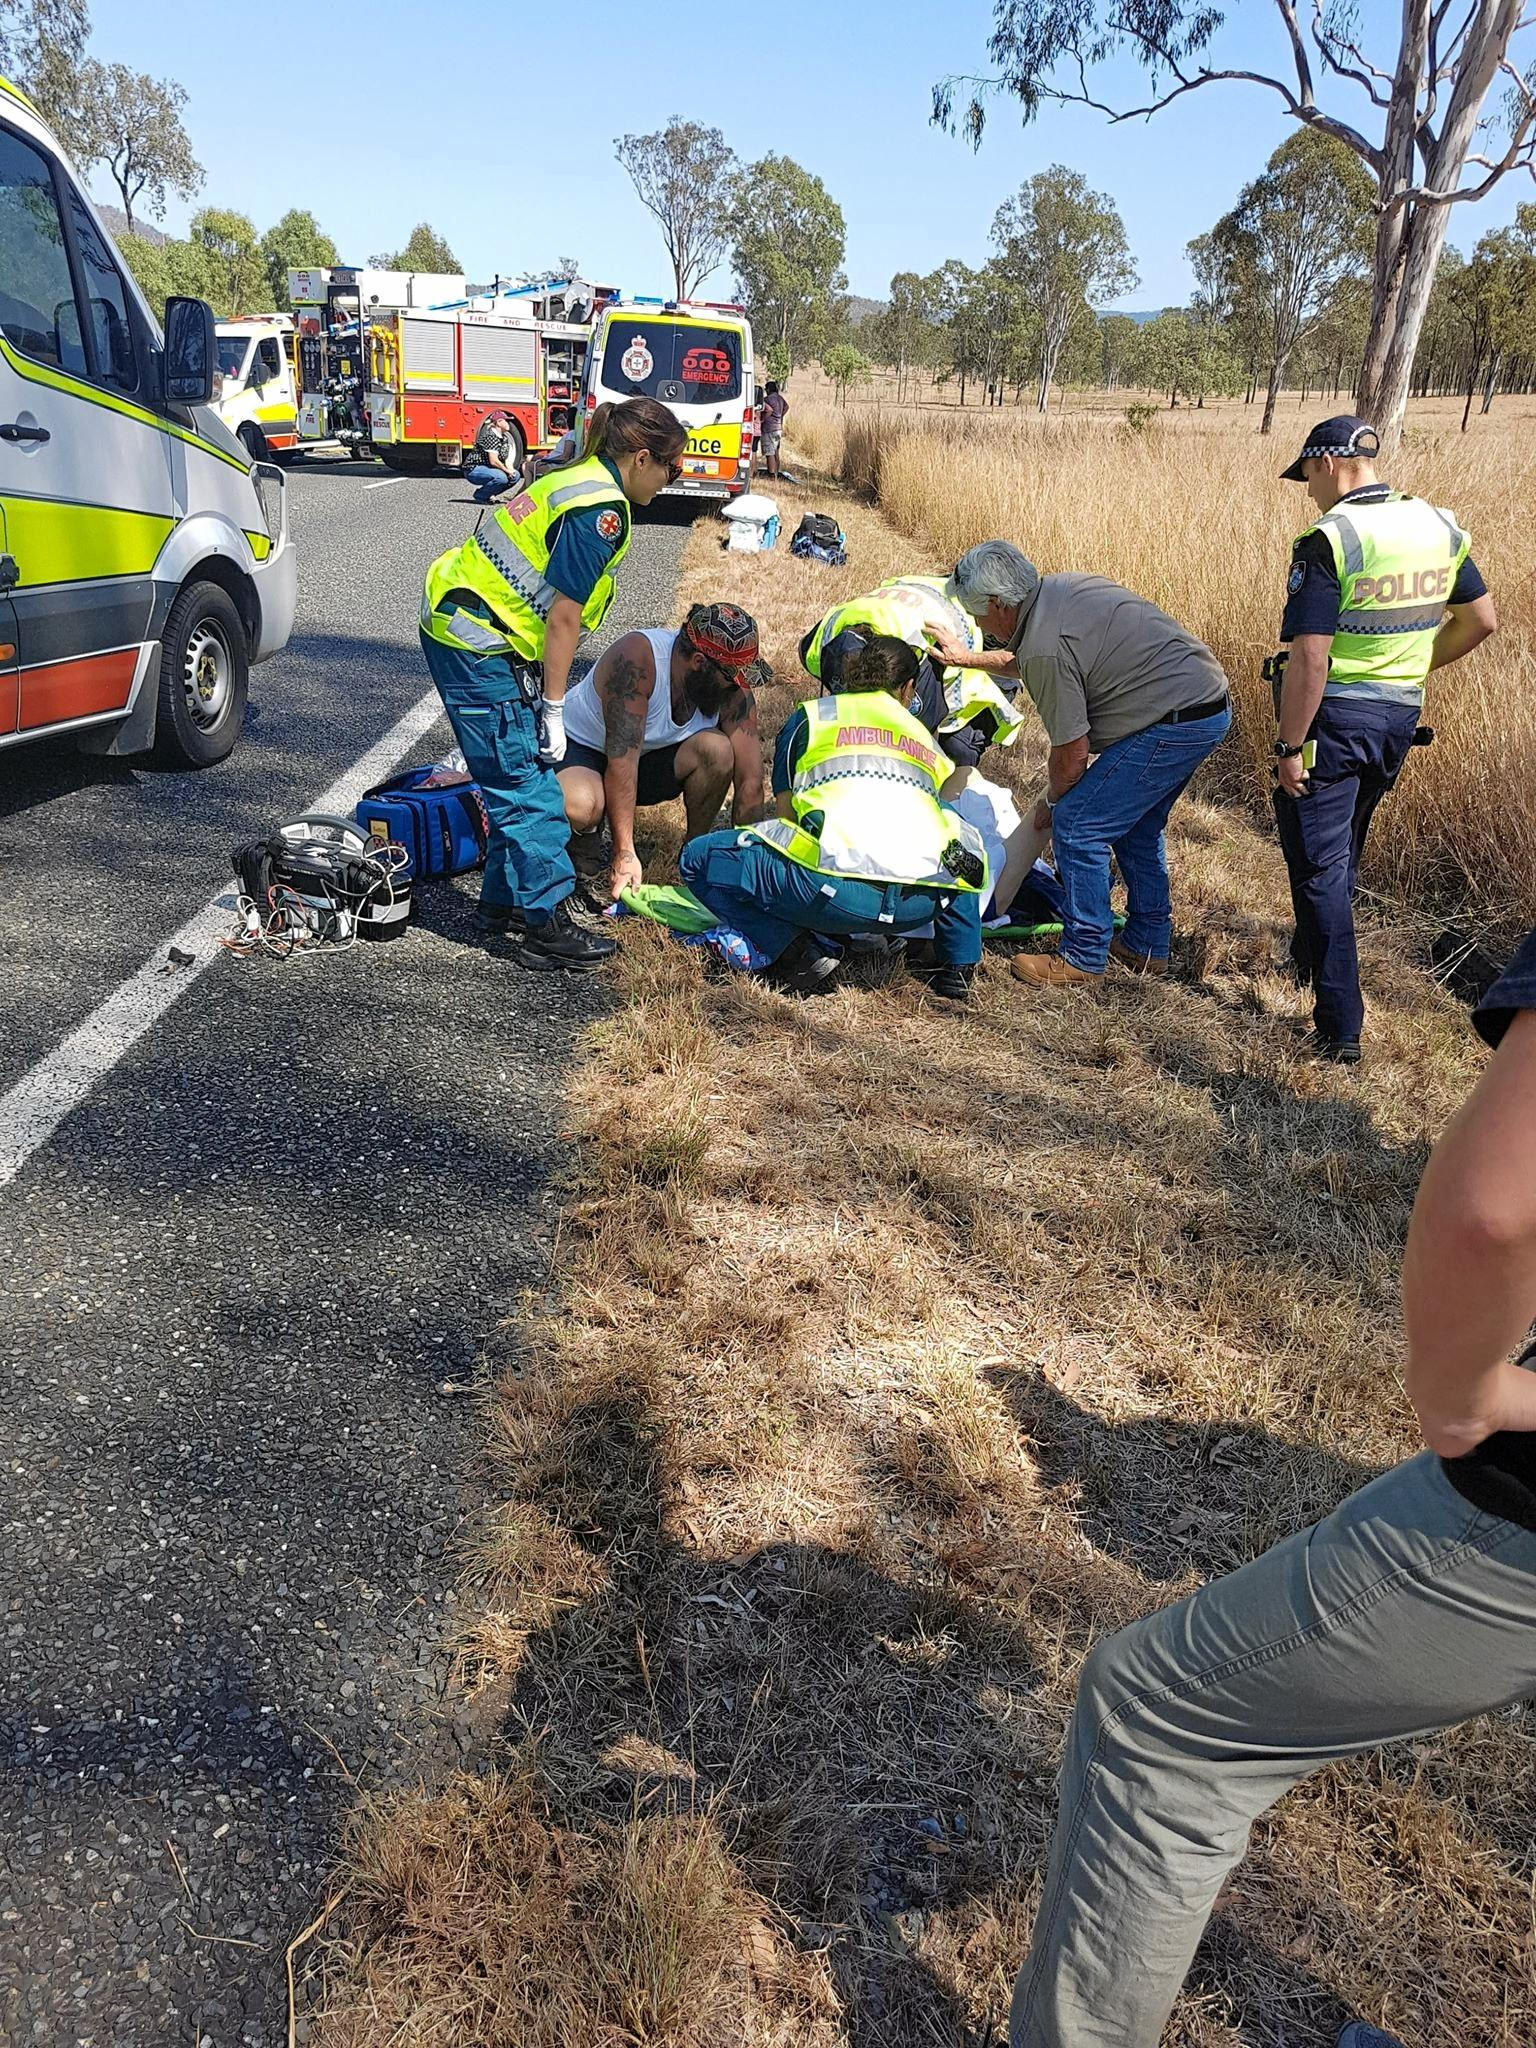 HEROIC EFFORT: Josh Morris and another civilian help emergency services at the Kilkivan crash.